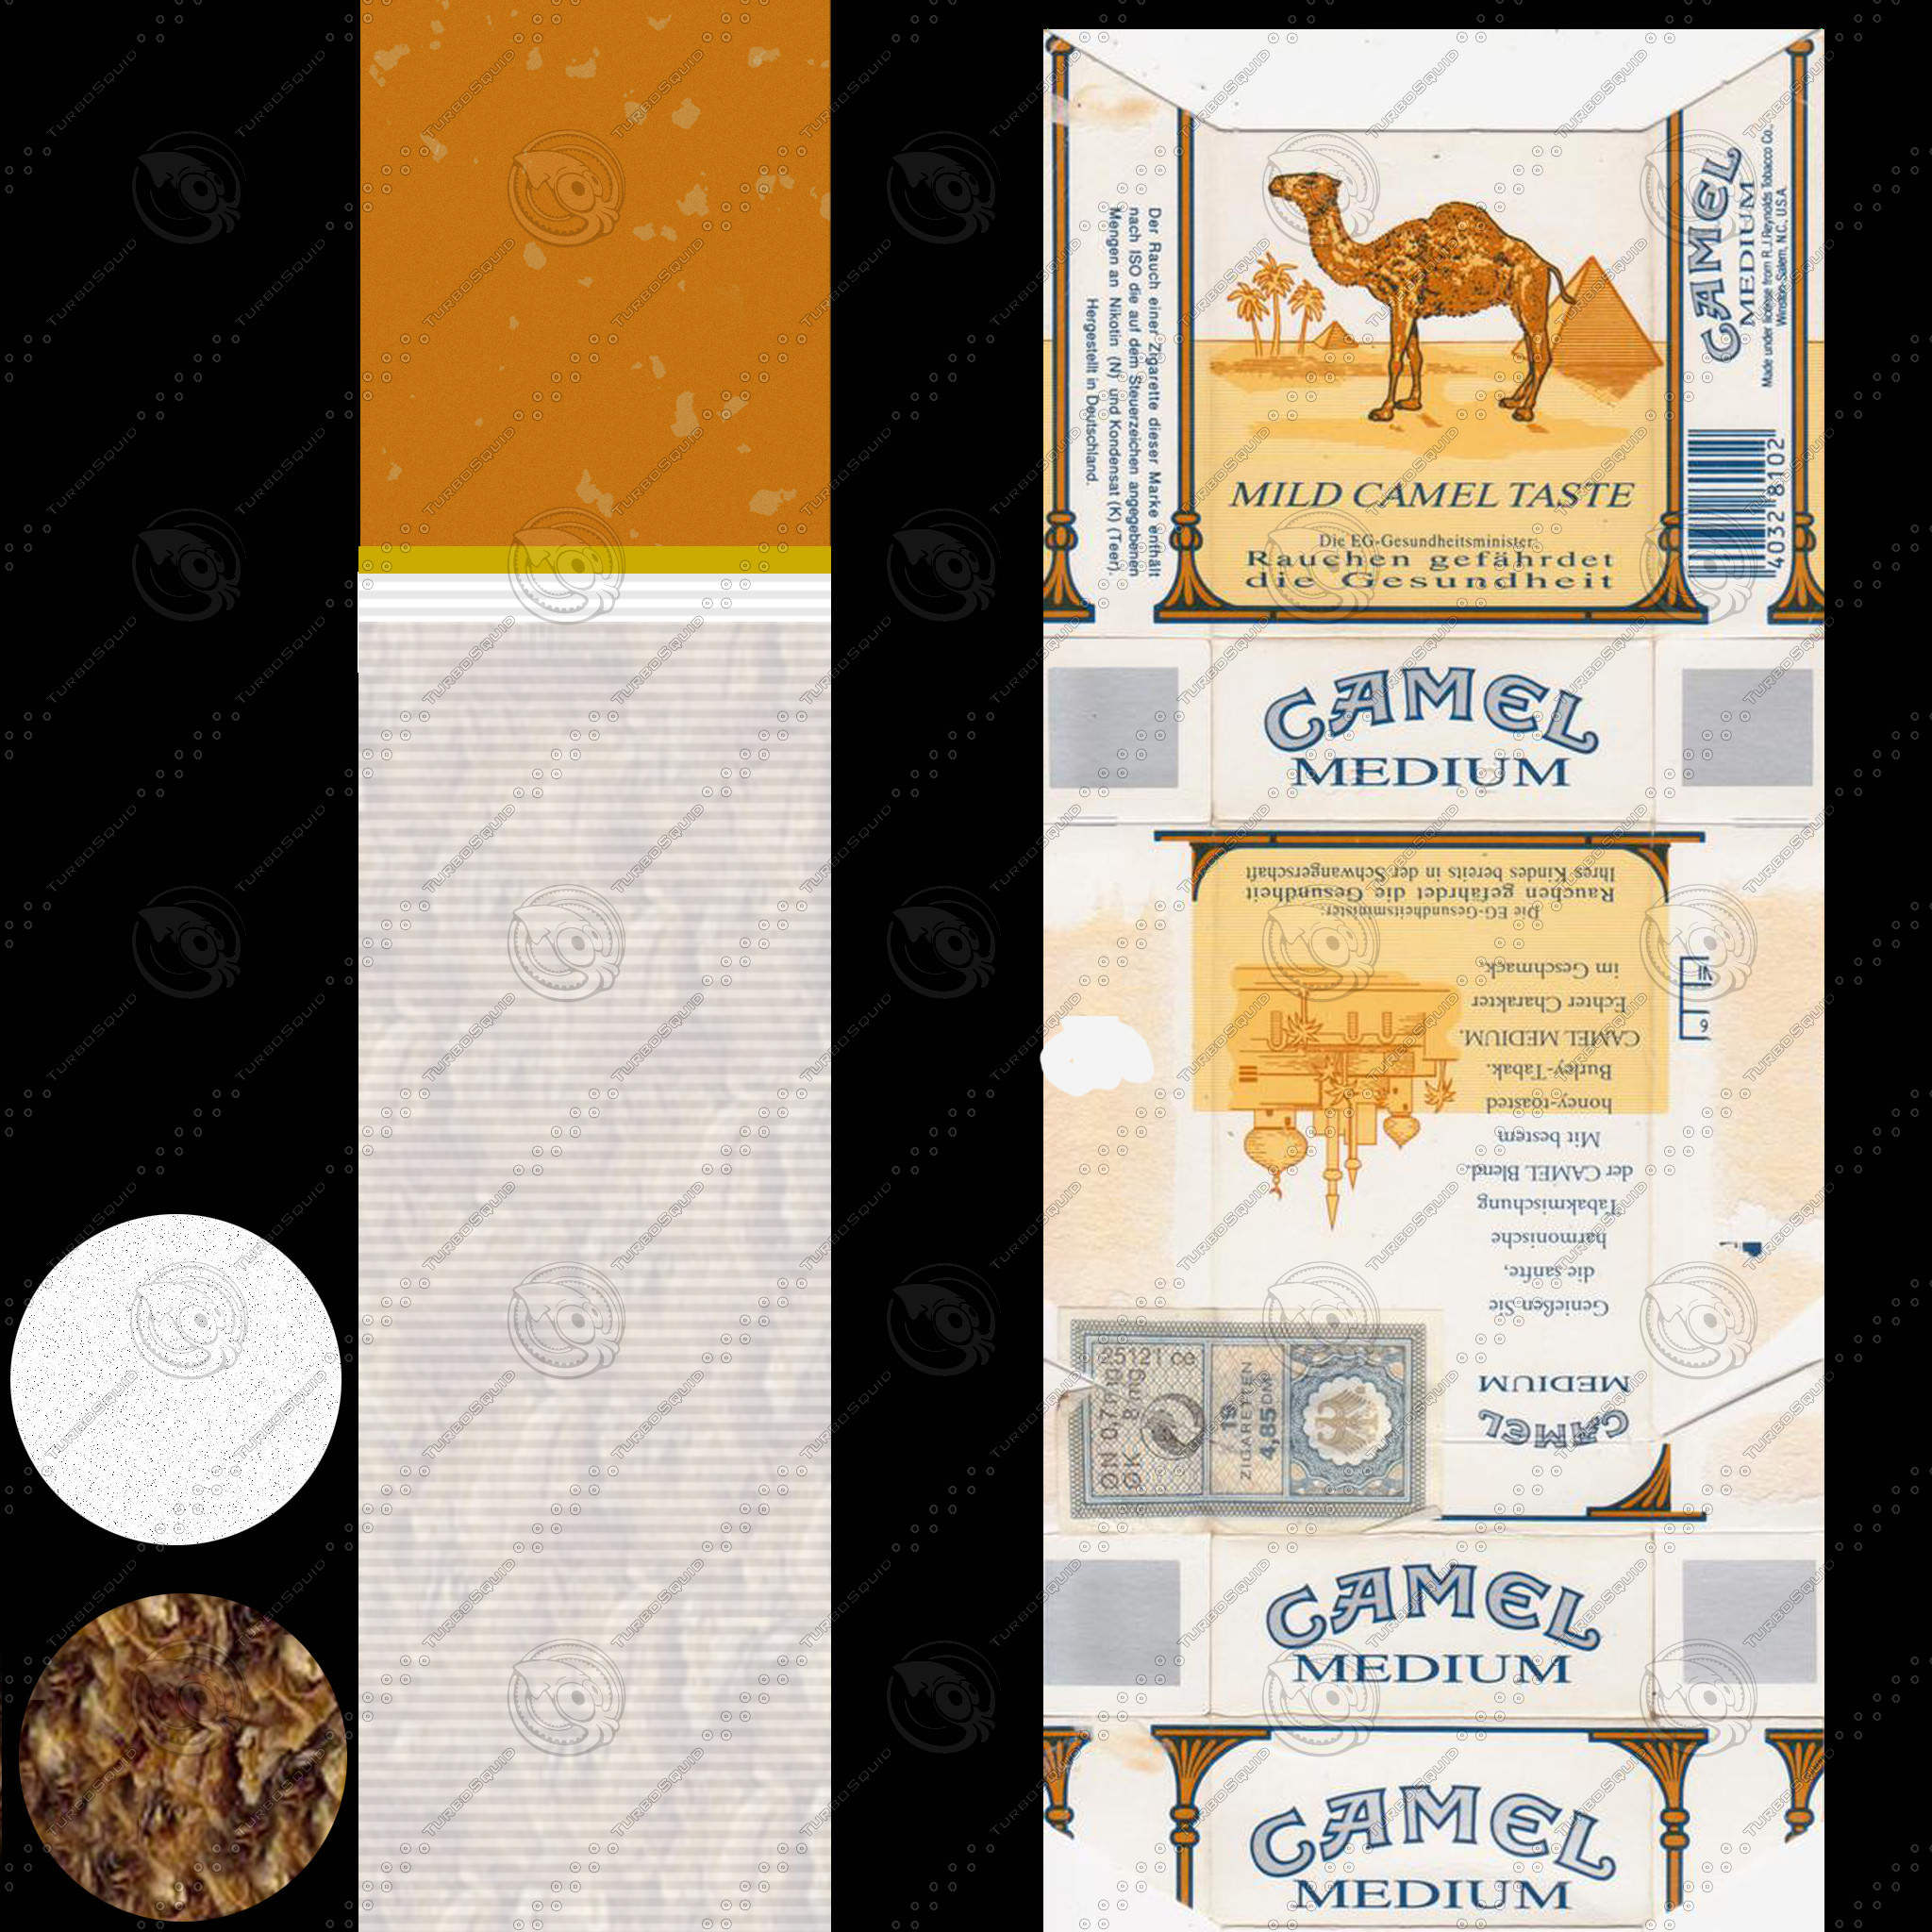 Camel mild cigarette pack 3D Model MAX OBJ 3DS C4D MTL ...